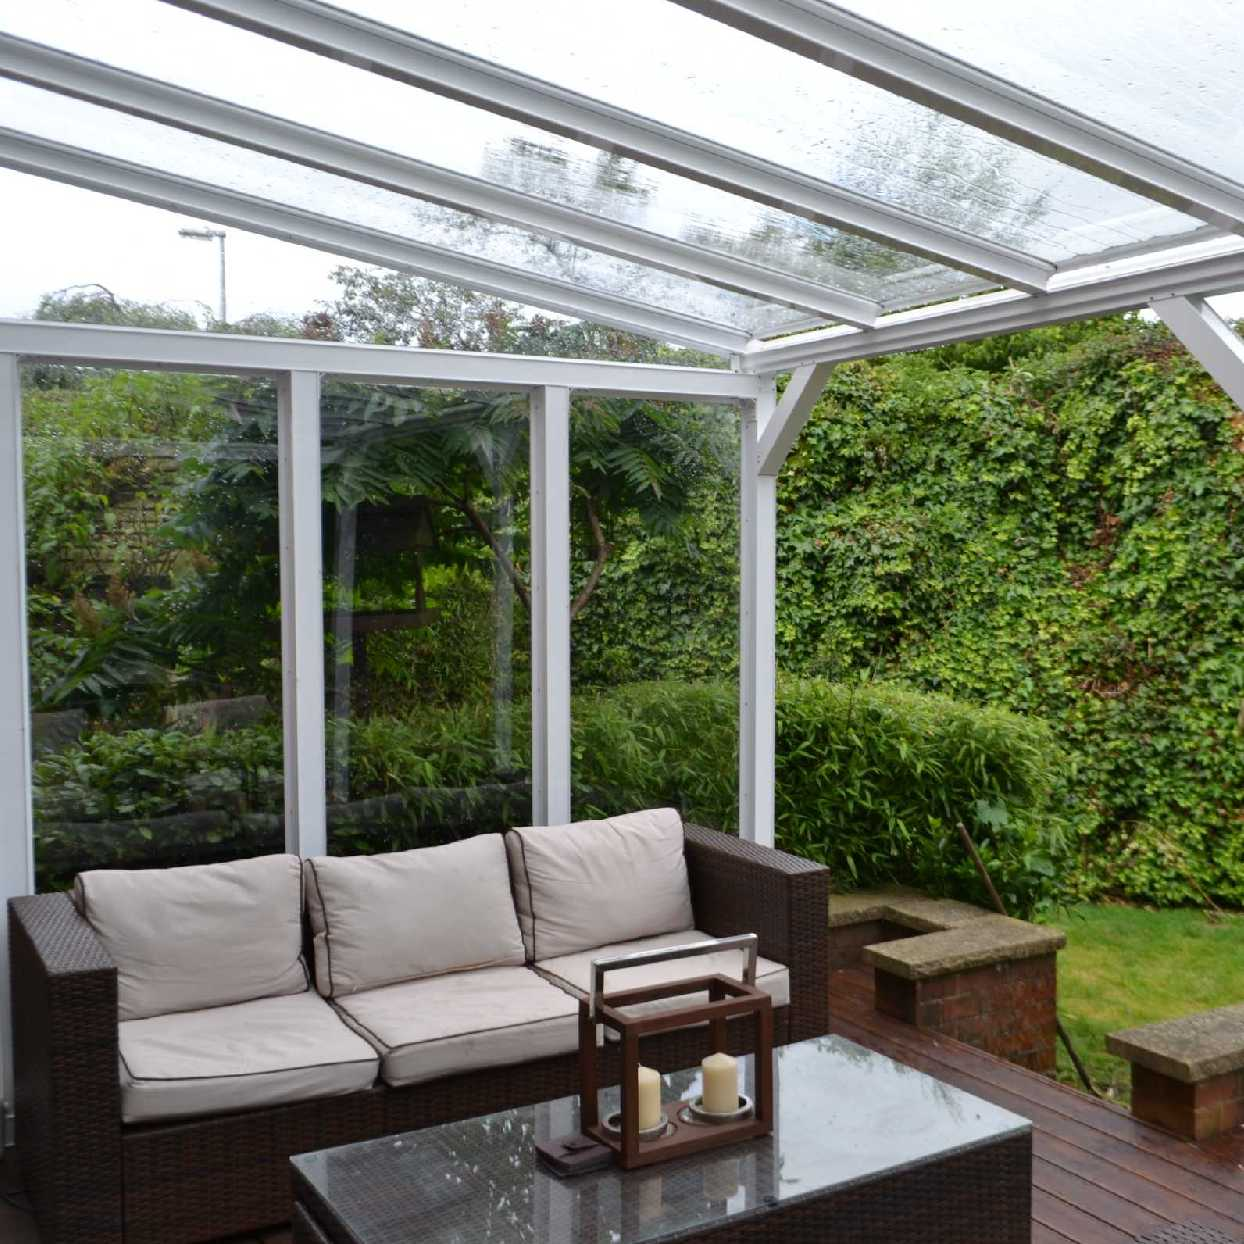 Omega Smart White Lean-To Canopy UNGLAZED for 6mm Glazing - 10.5m (W) x 2.5m (P), (5) Supporting Posts